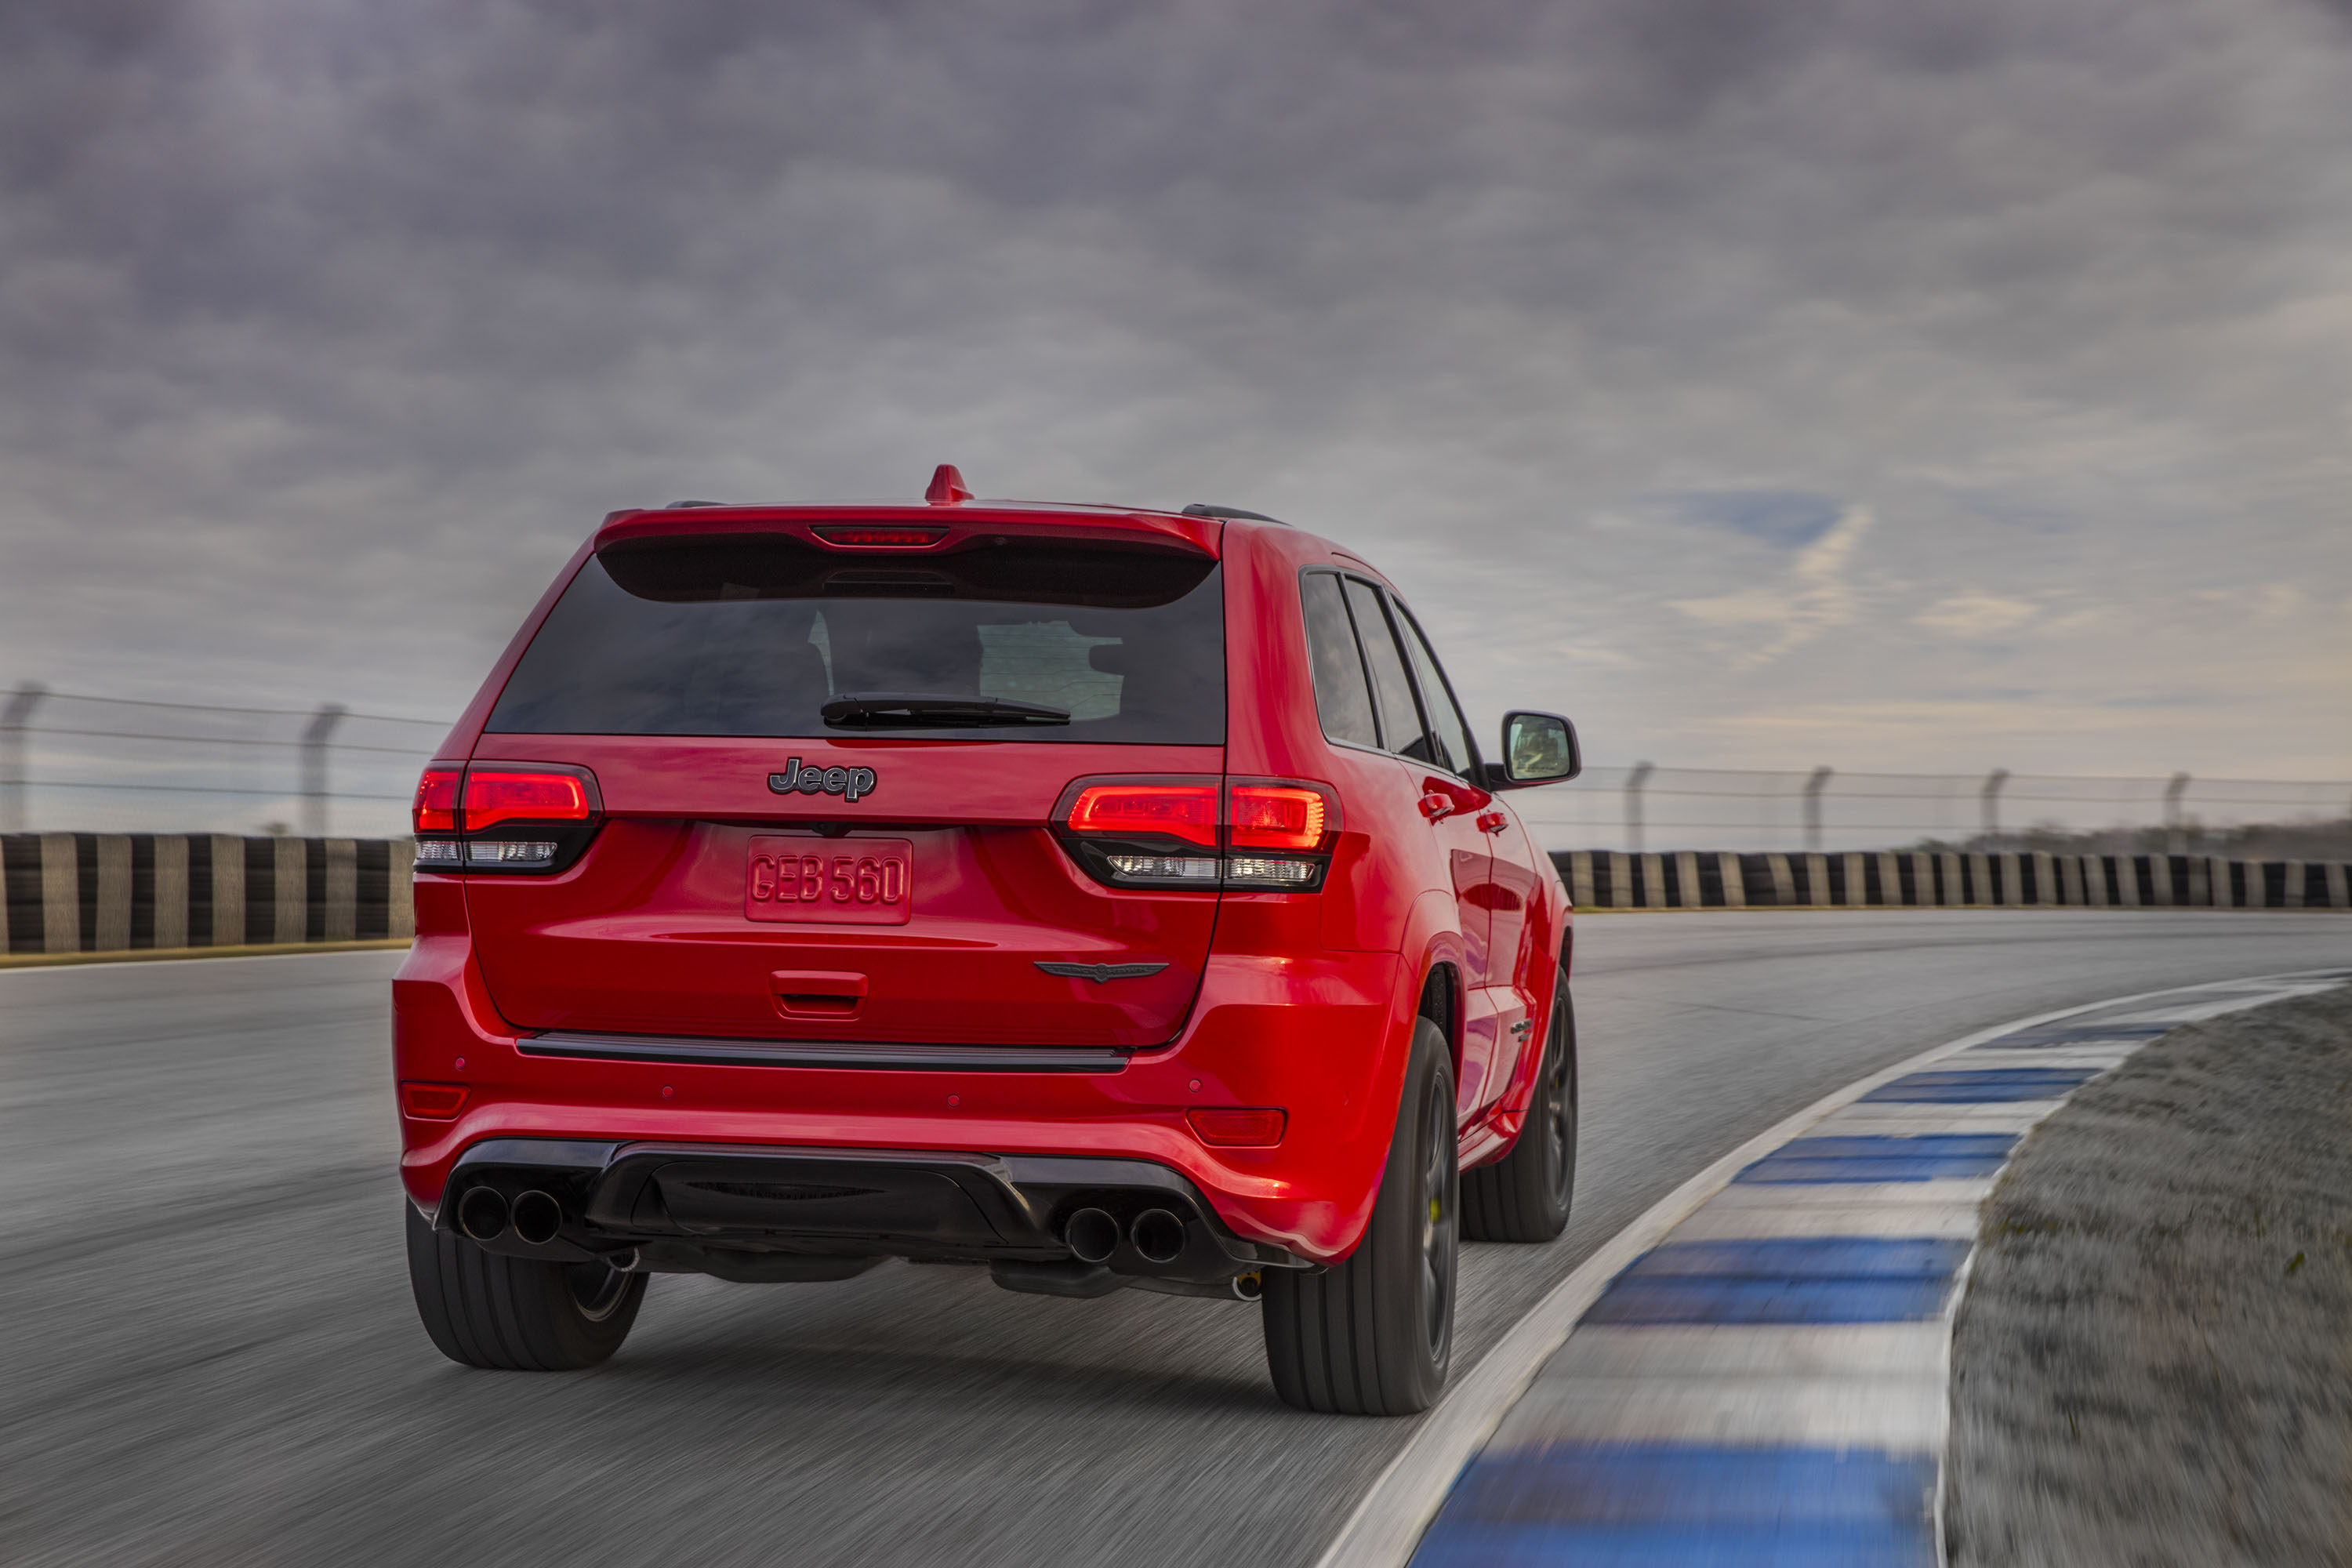 2018 Jeep Grand Cherokee Supercharged Trackhawk Rear Three-Quarter Wallpapers (5)